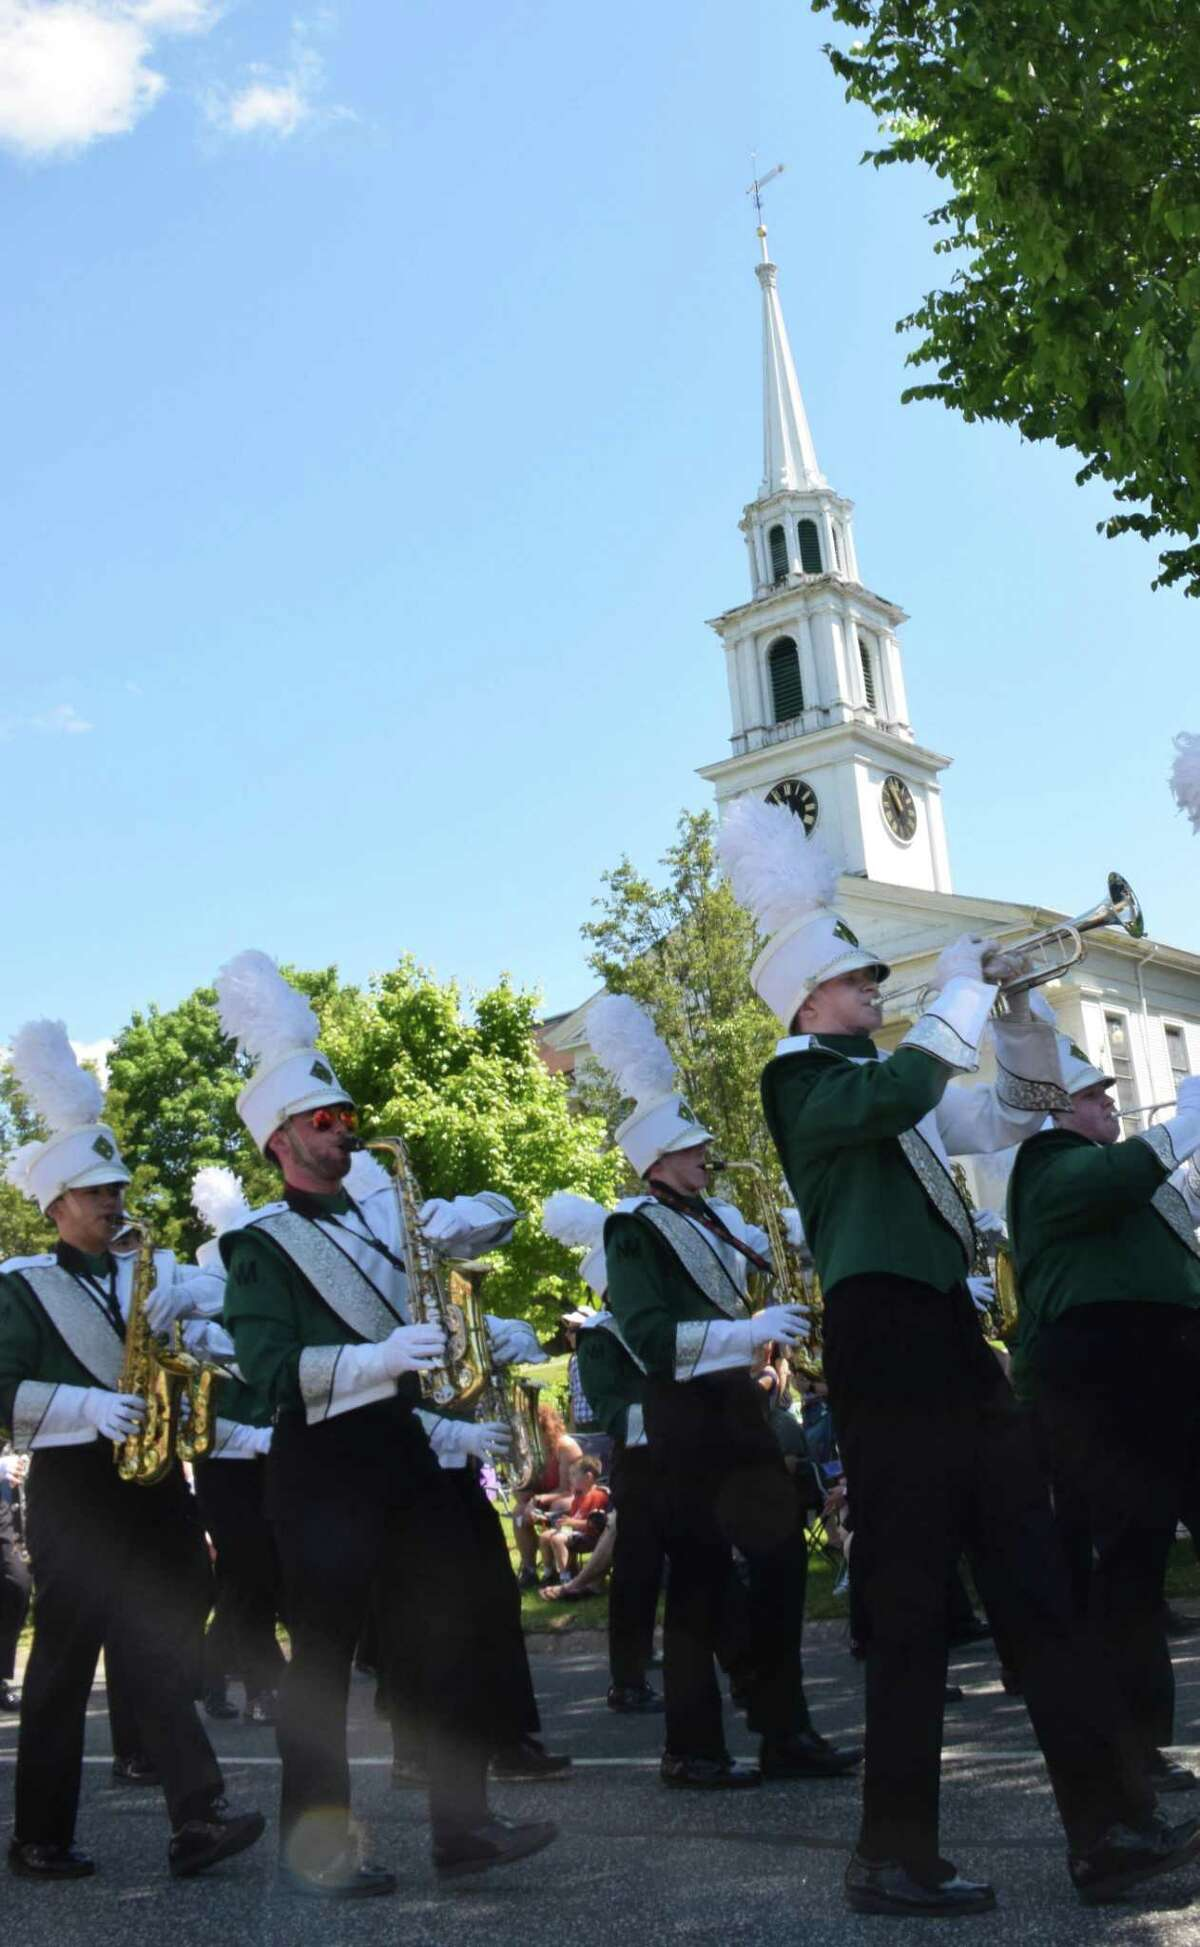 Spectrum/New Milford recognized Memorial Day with a ceremony in front of the New Milford Public Library, followed by a parade downtown. May 27, 2019. Above, members of the New Milford High School band march along Main Street, with the First Congregational Church in the background.